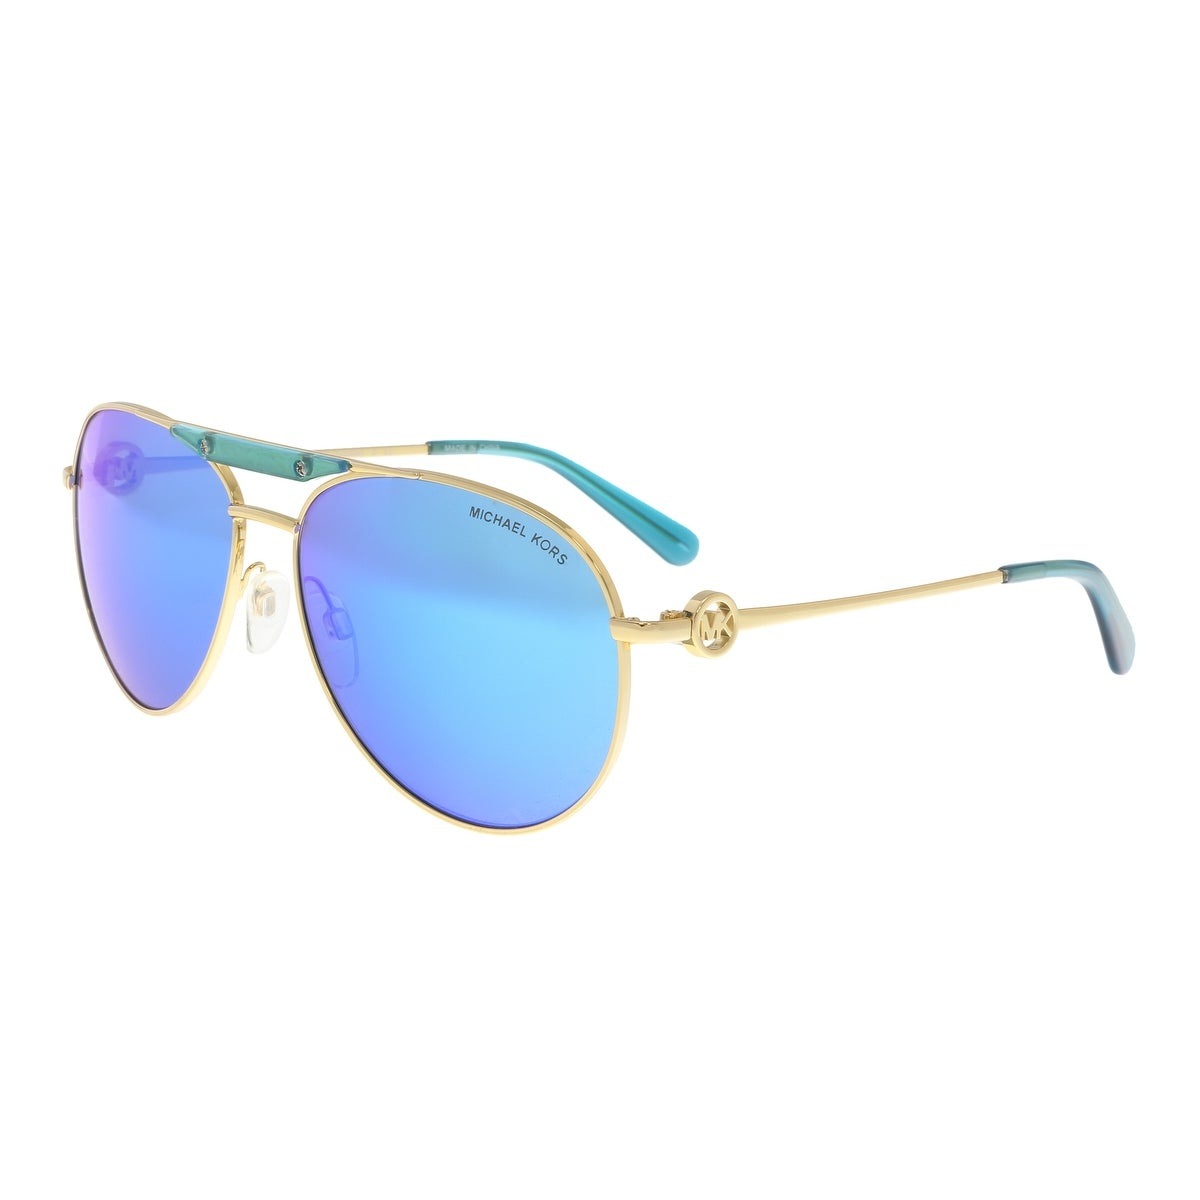 44fe9f0a88 Michael Kors Sunglasses